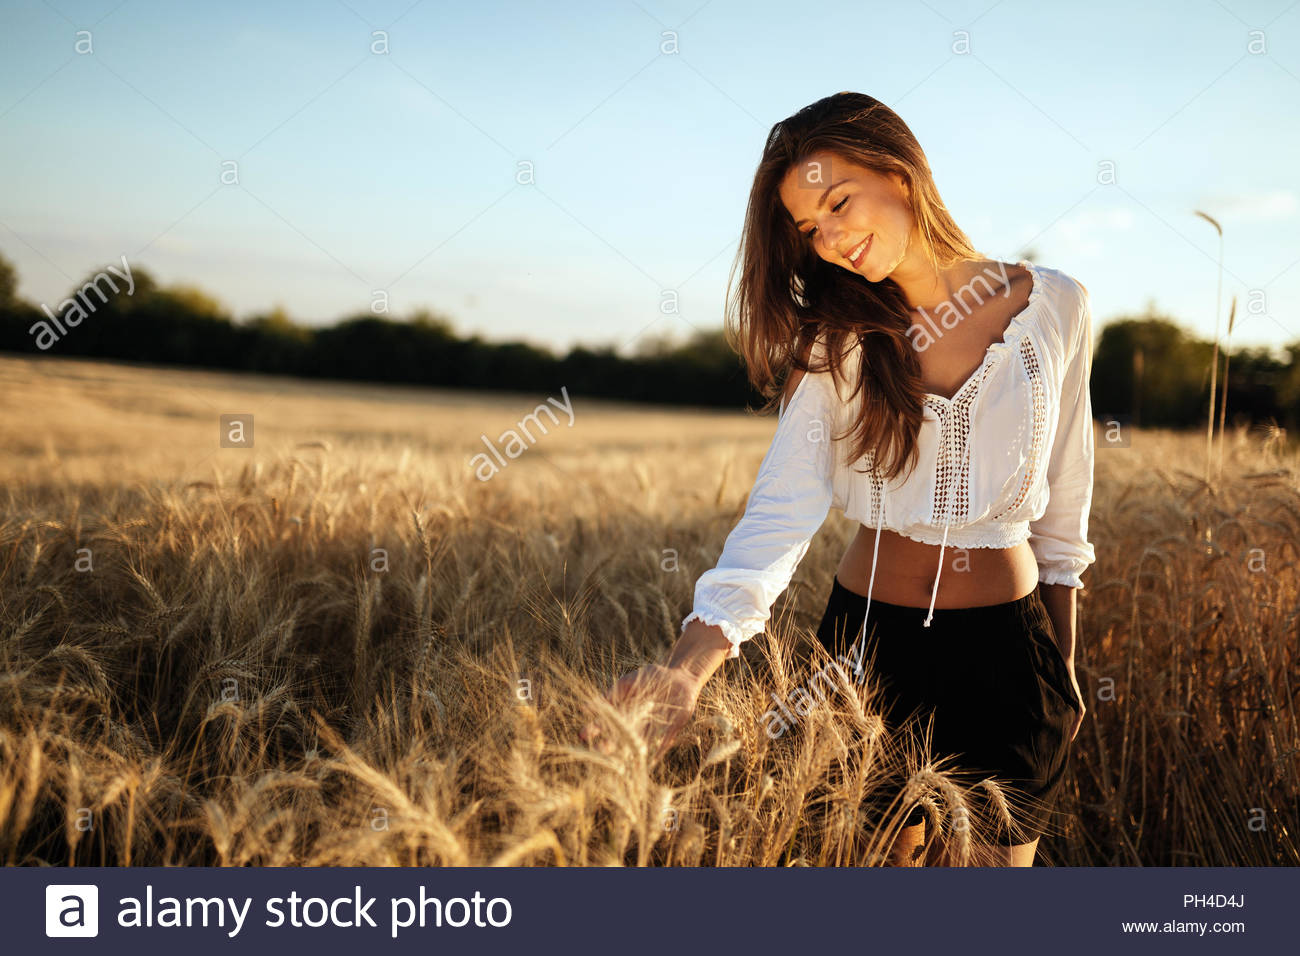 young-beautiful-woman-spending-time-in-nature-PH4D4J.jpg